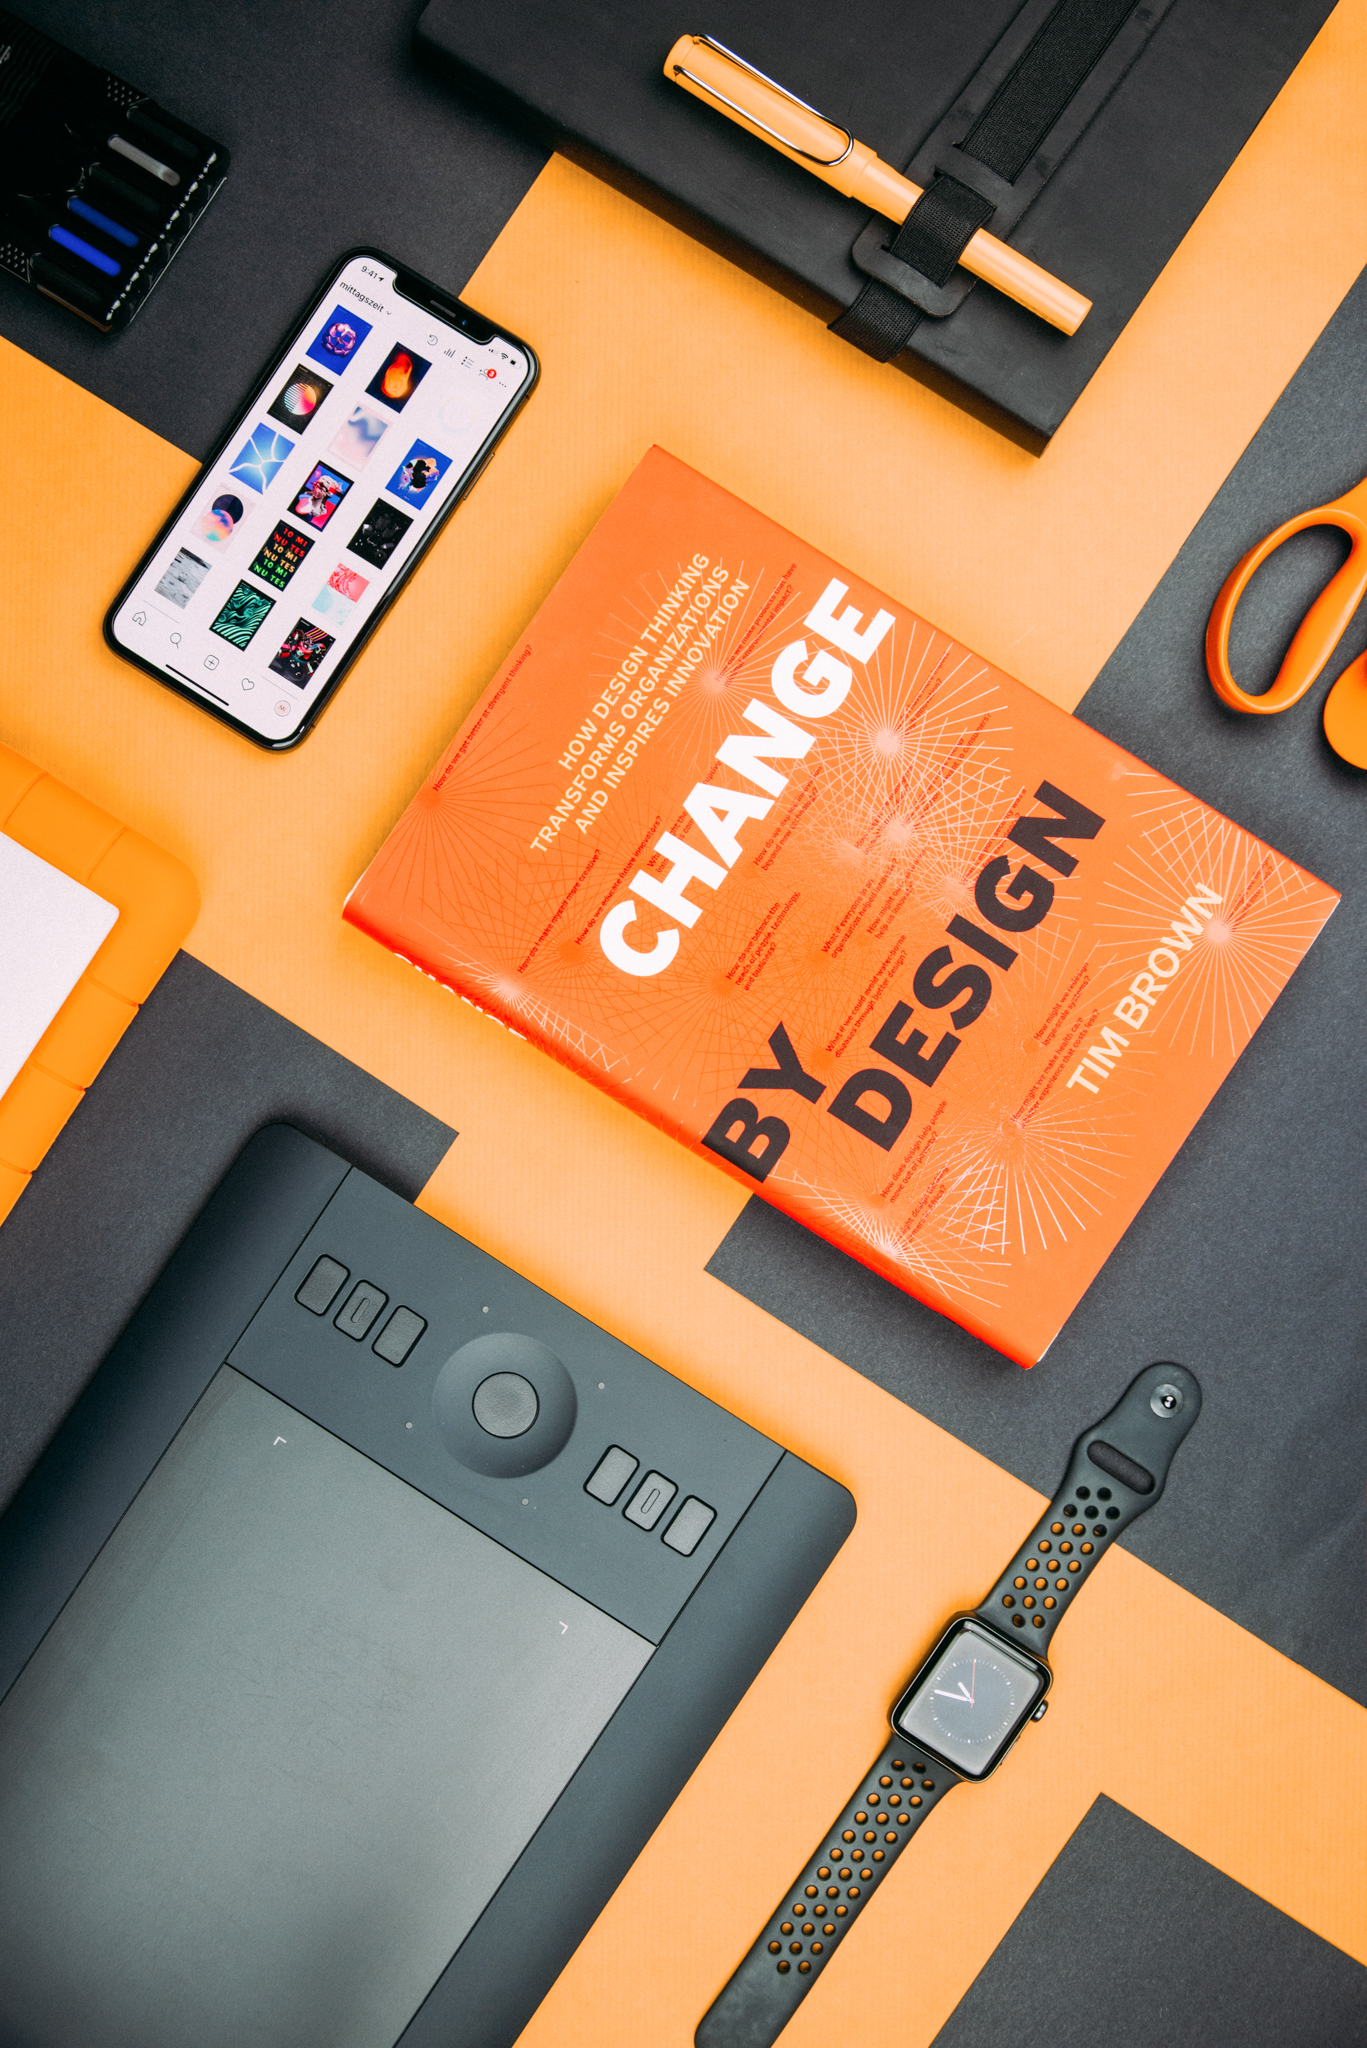 Top down shot of desk with the book change by design centred, other objects include phone, graphics pad, notepad and scissors